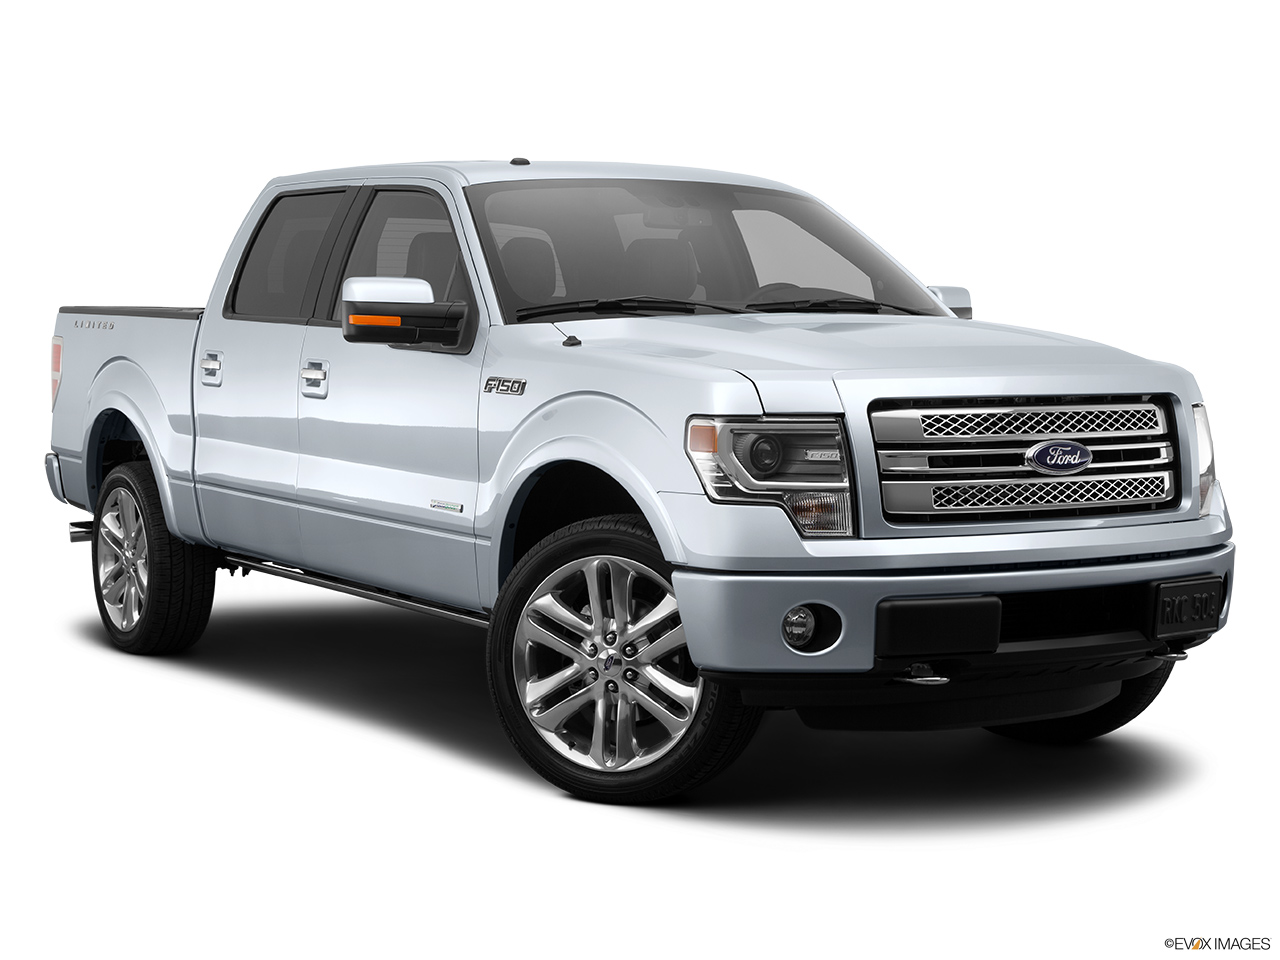 2014 ford f 150 platinum for sale with photos carfax. Black Bedroom Furniture Sets. Home Design Ideas